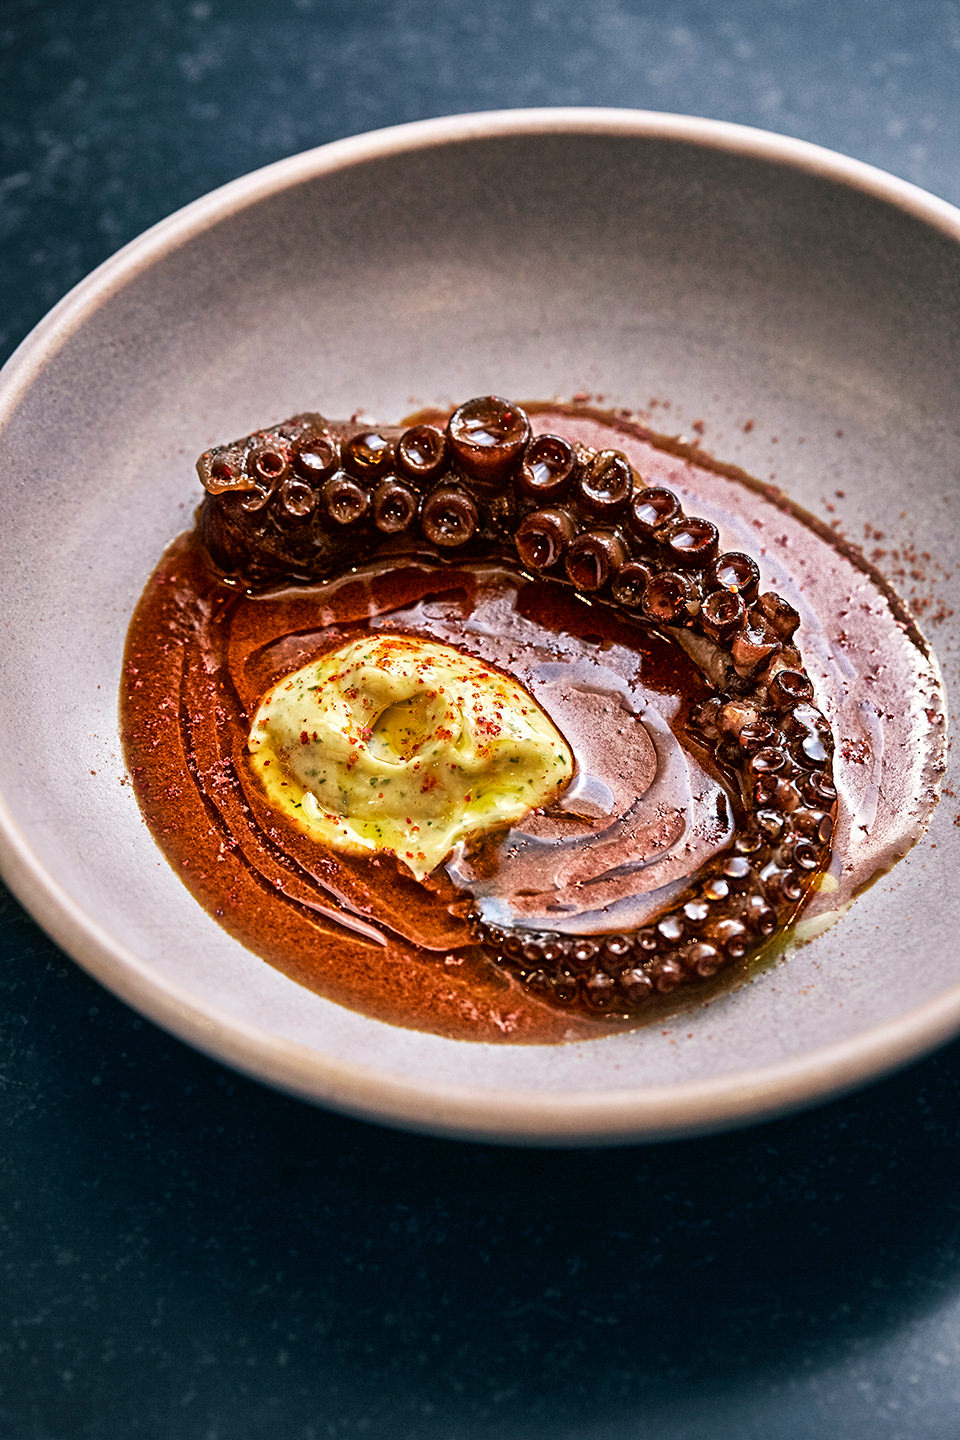 octopus-grilled-adam-byatt-chef